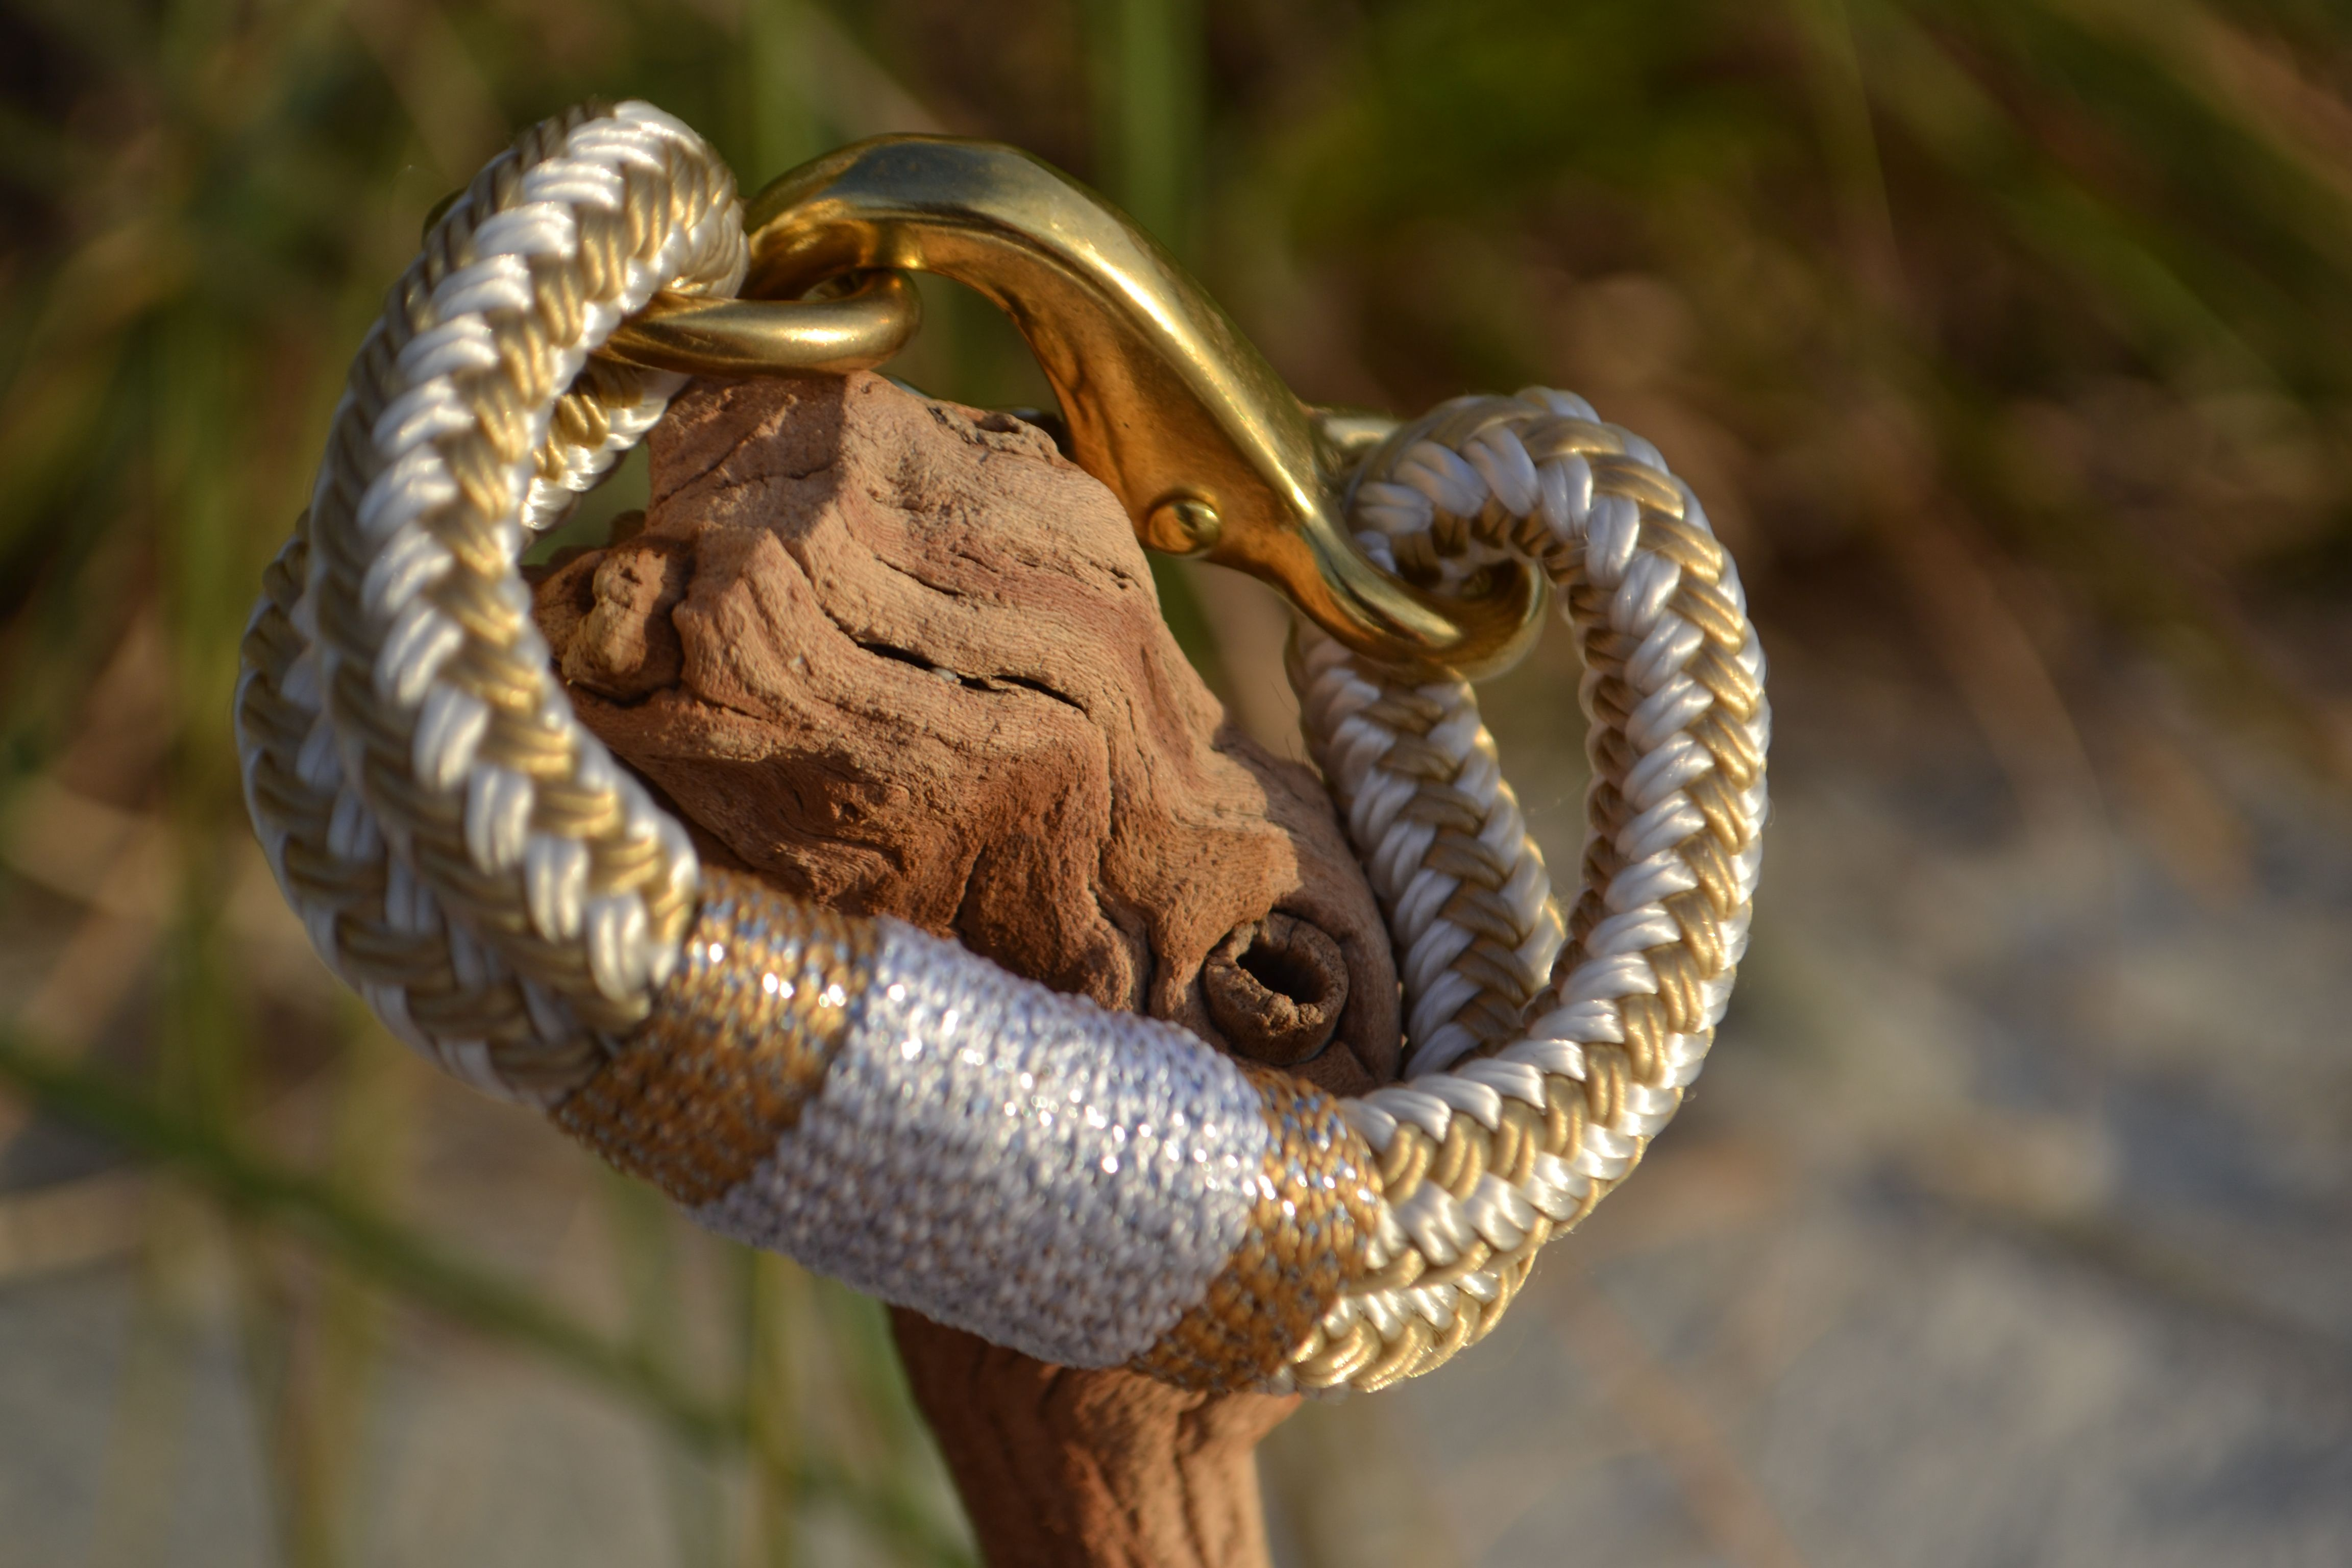 Silver and gold rope bracelet by knotical oticalspot